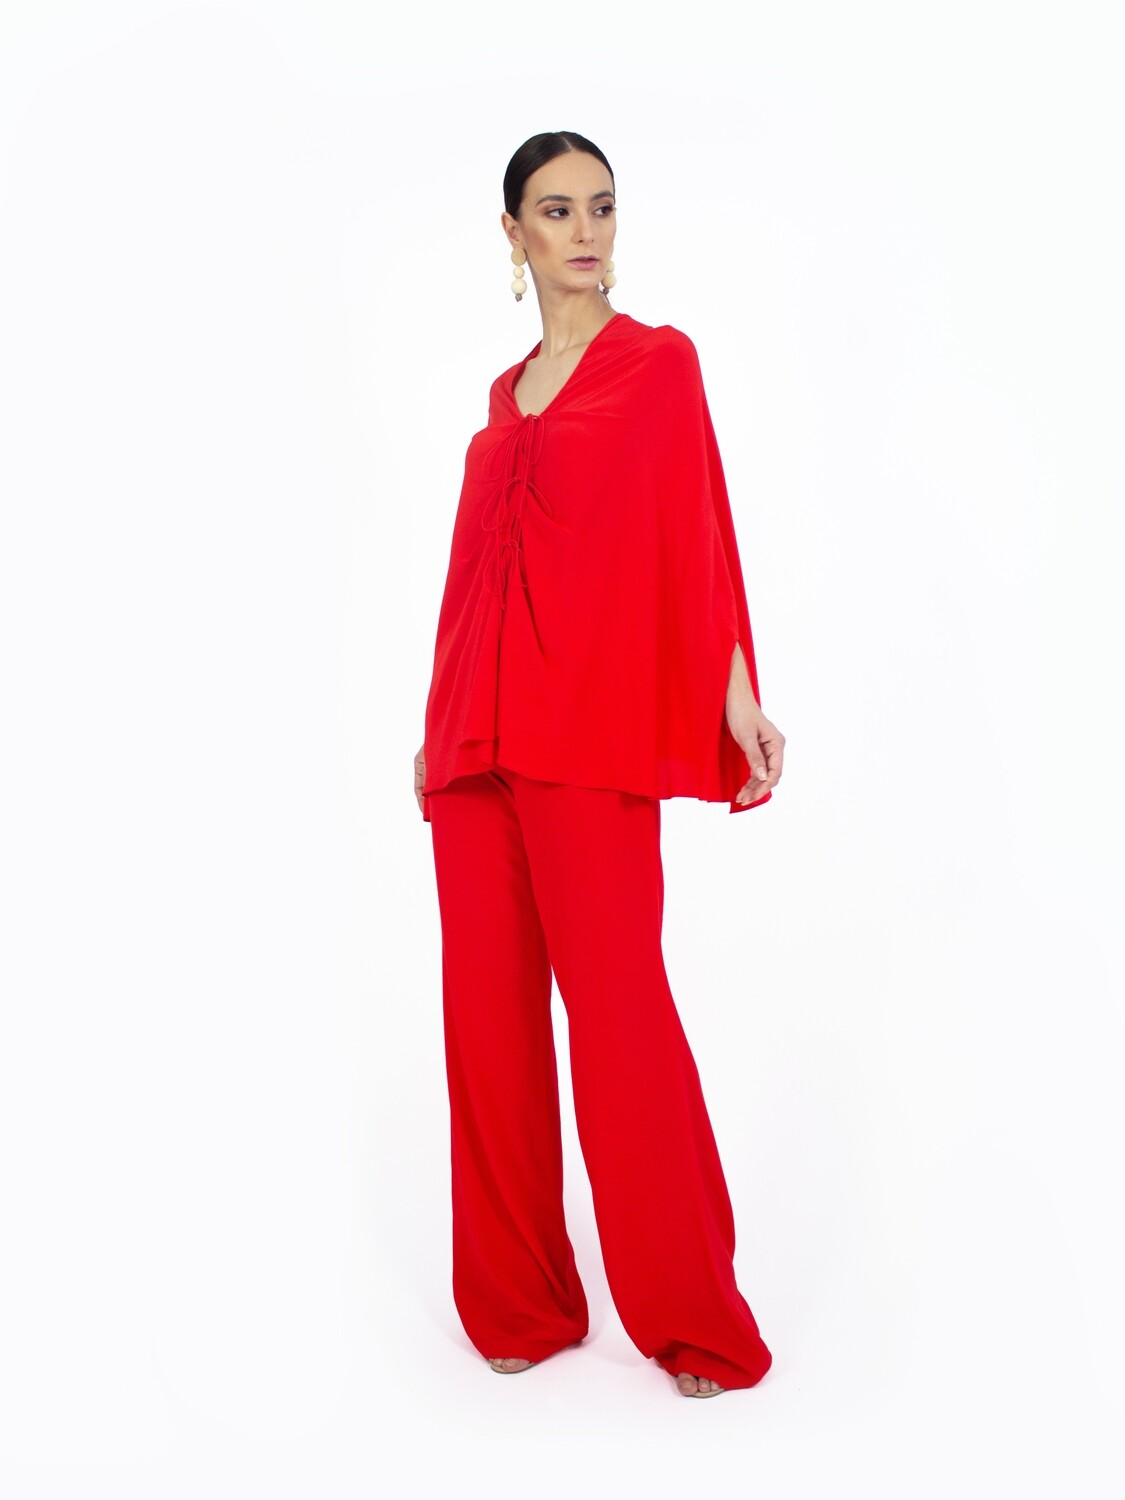 THE AFZAN PANTSUIT